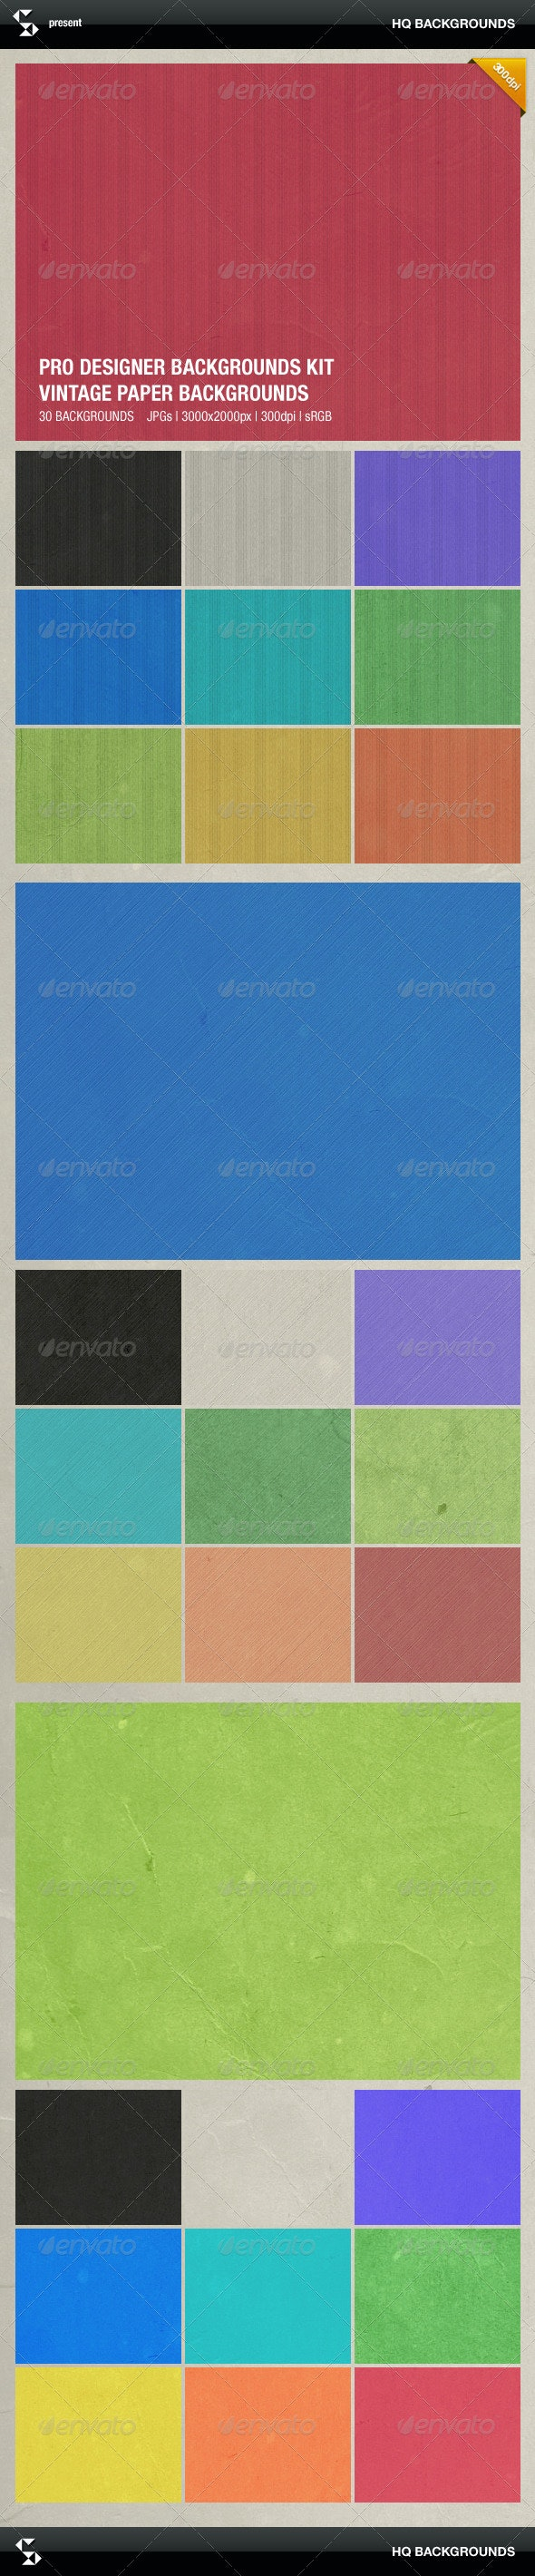 Vintage Grunge Paper Backgrounds - Miscellaneous Backgrounds